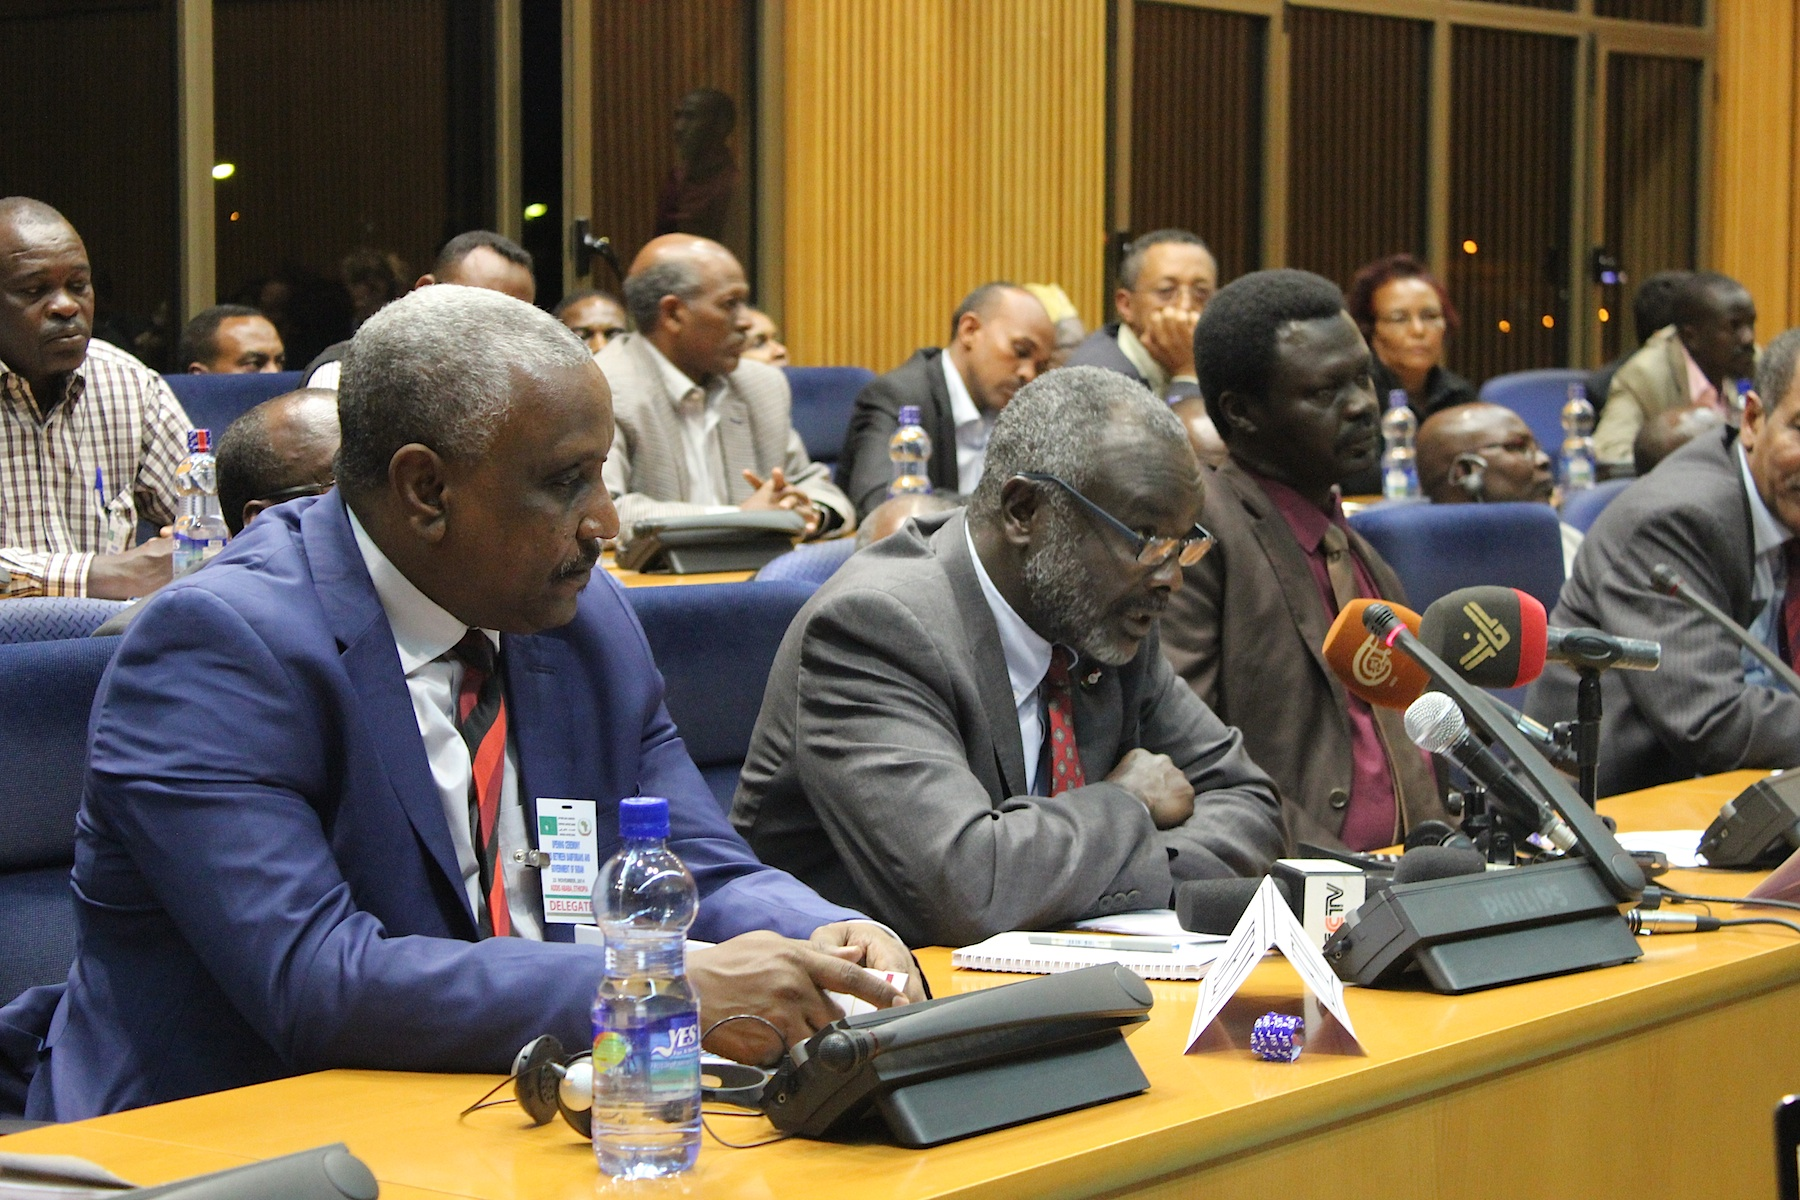 Opening statement talking points for opening ceremony by JEM Chairman Mr. Mohamed Ibrahim Gebreil: Darfur Peace Talks